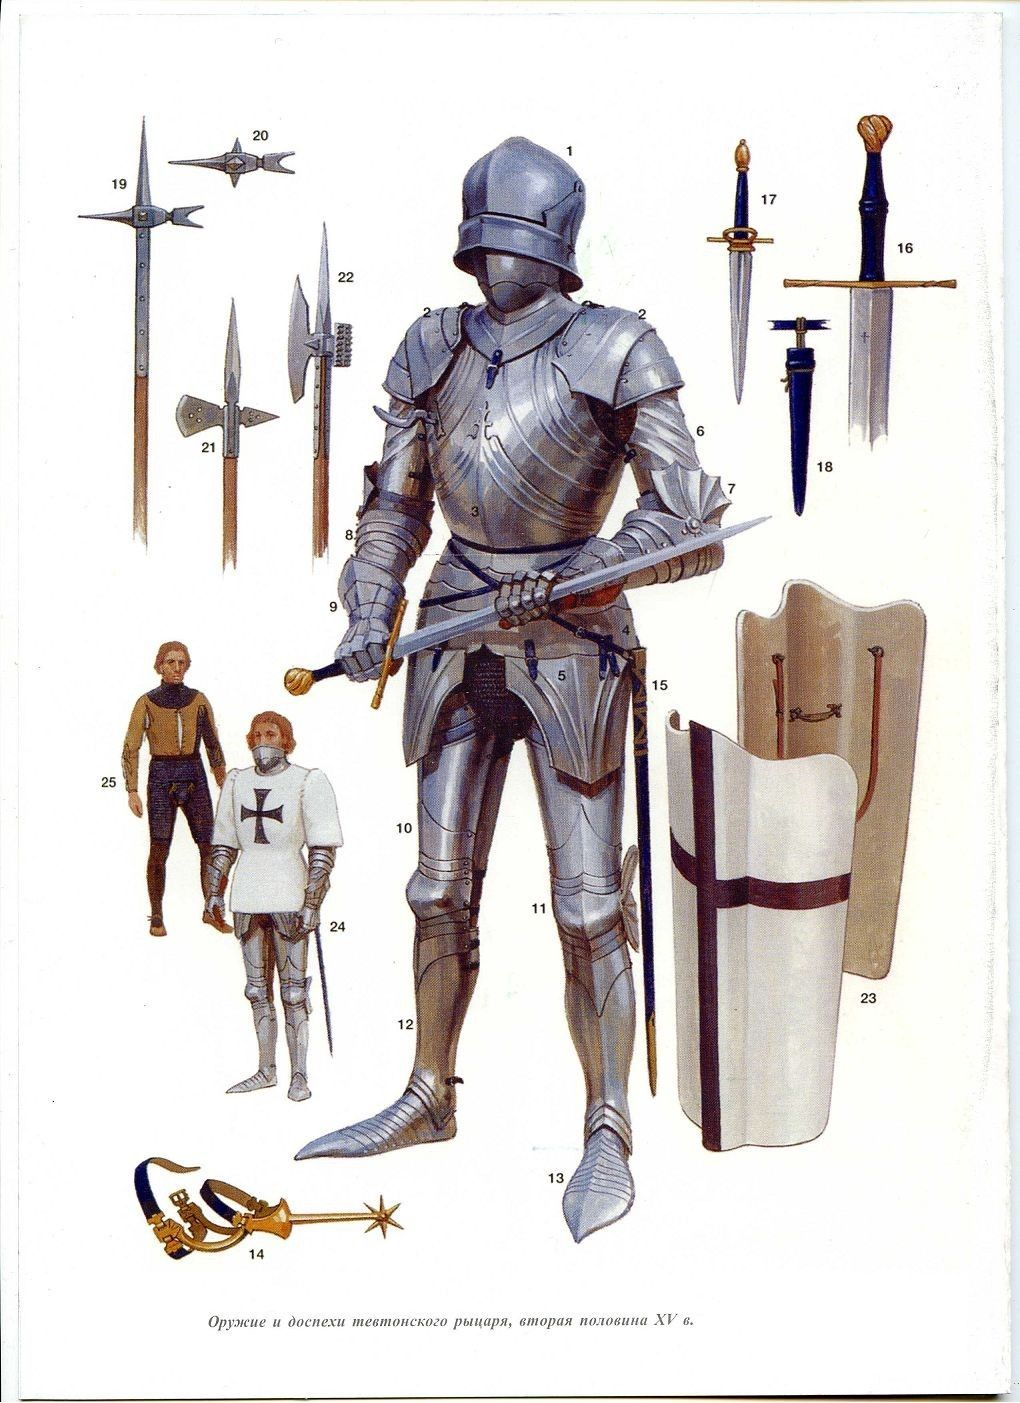 Pin by Bence Psenák on Lovagok   Pinterest   Medieval, Knight and ...